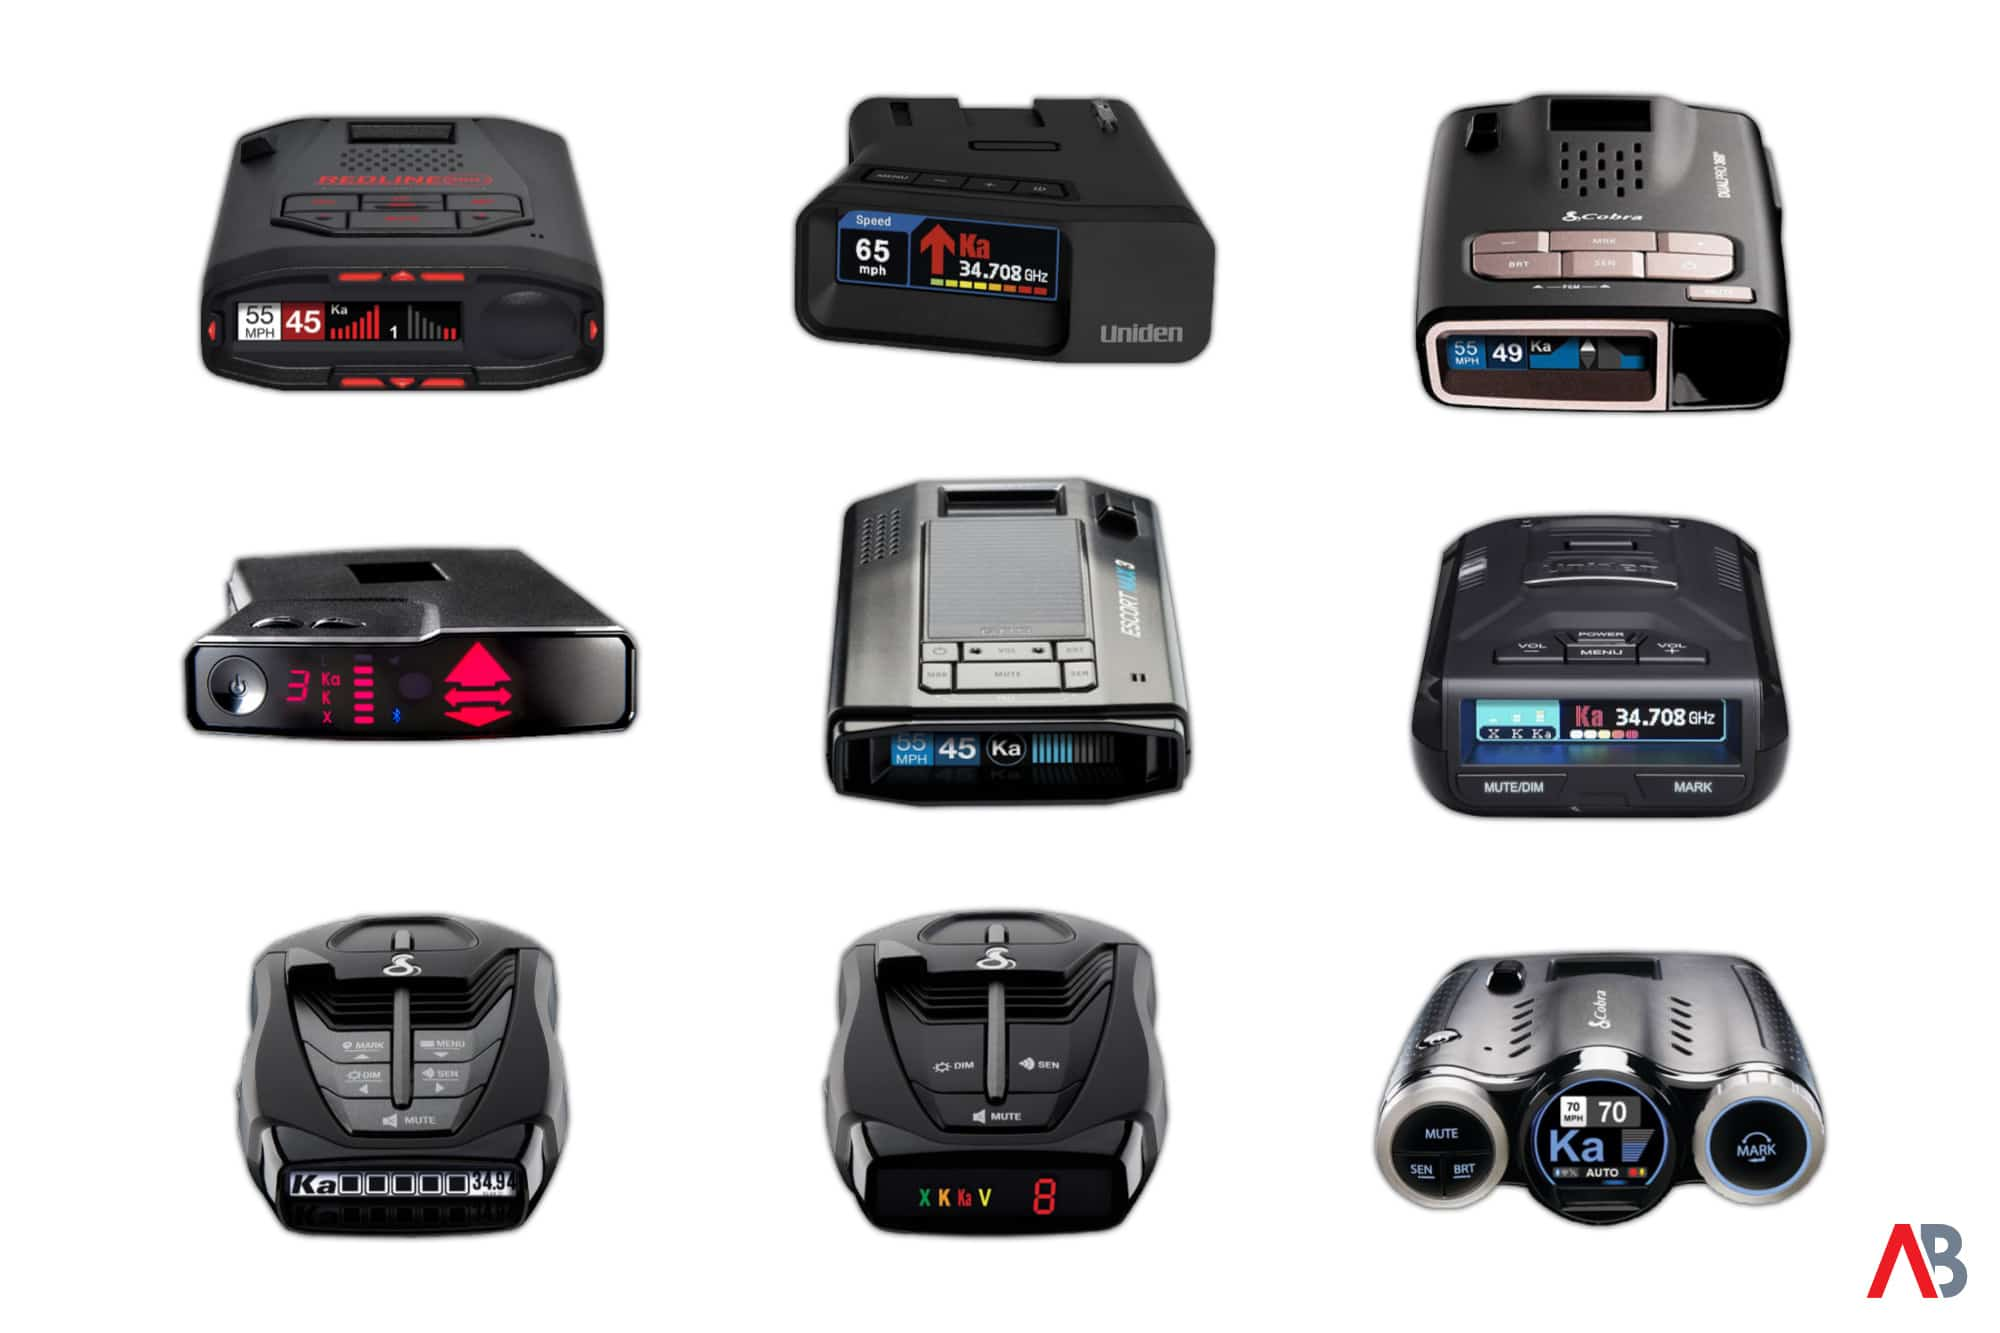 The 9 Best Radar Detectors on the Market Ranked (2021)